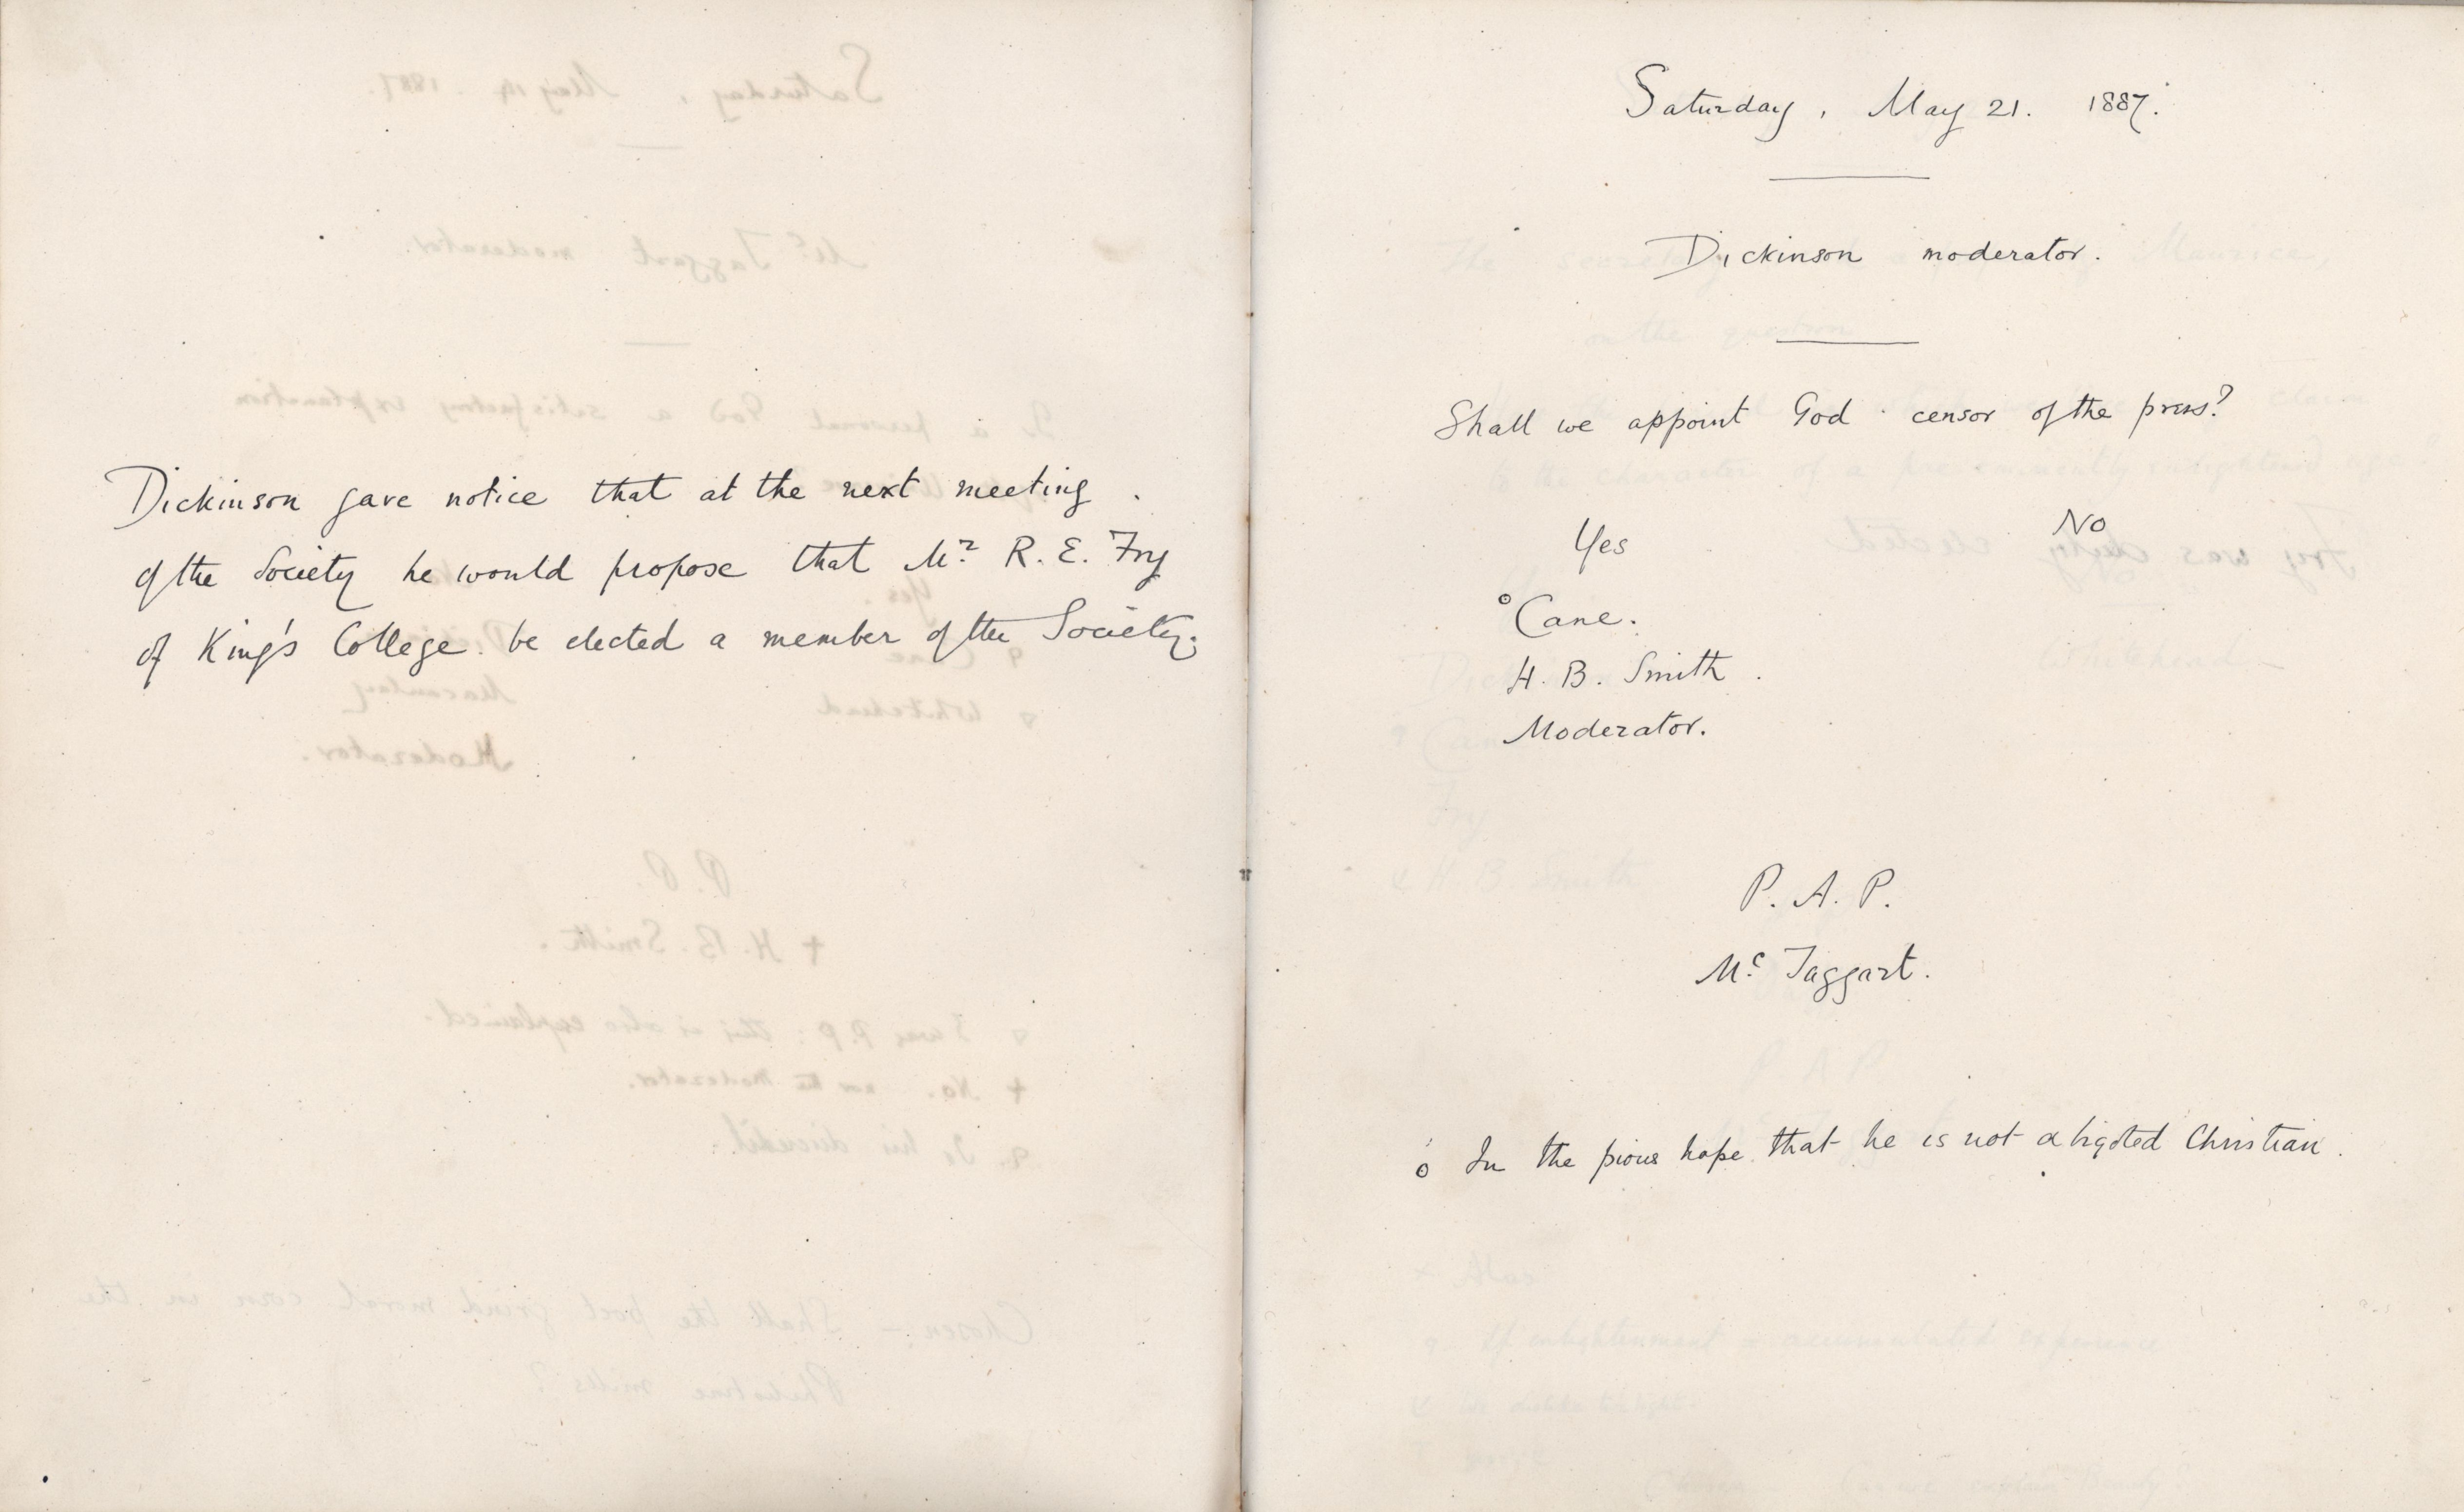 Minutes of a meeting in which Dickinson gave notice that he would propose the election of Roger Fry at the next meeting. [KCAS/39/1/10, 21 May 1887]